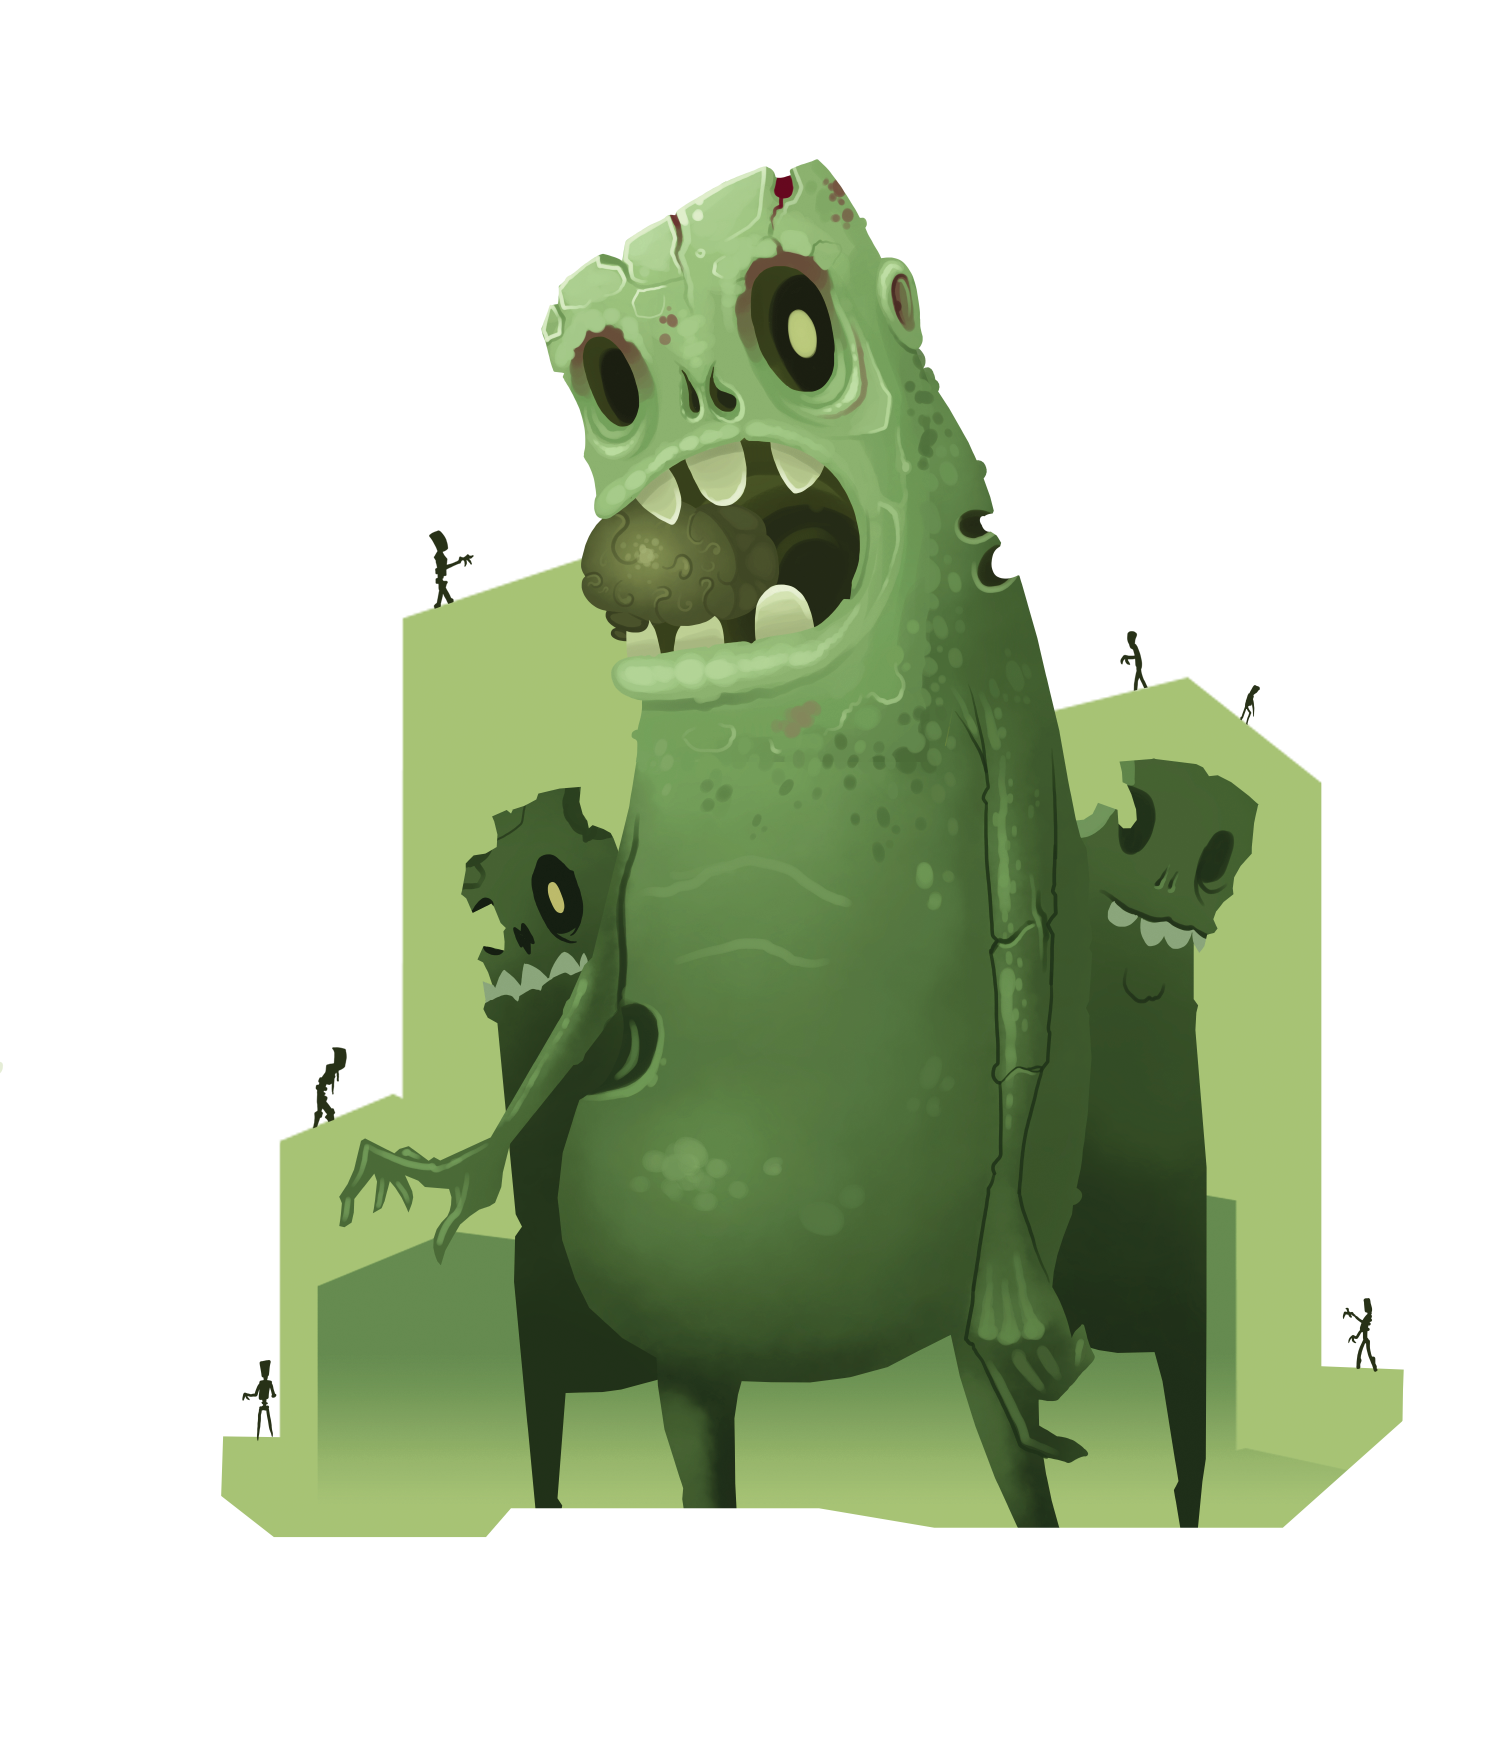 A green illustrated group of zombies